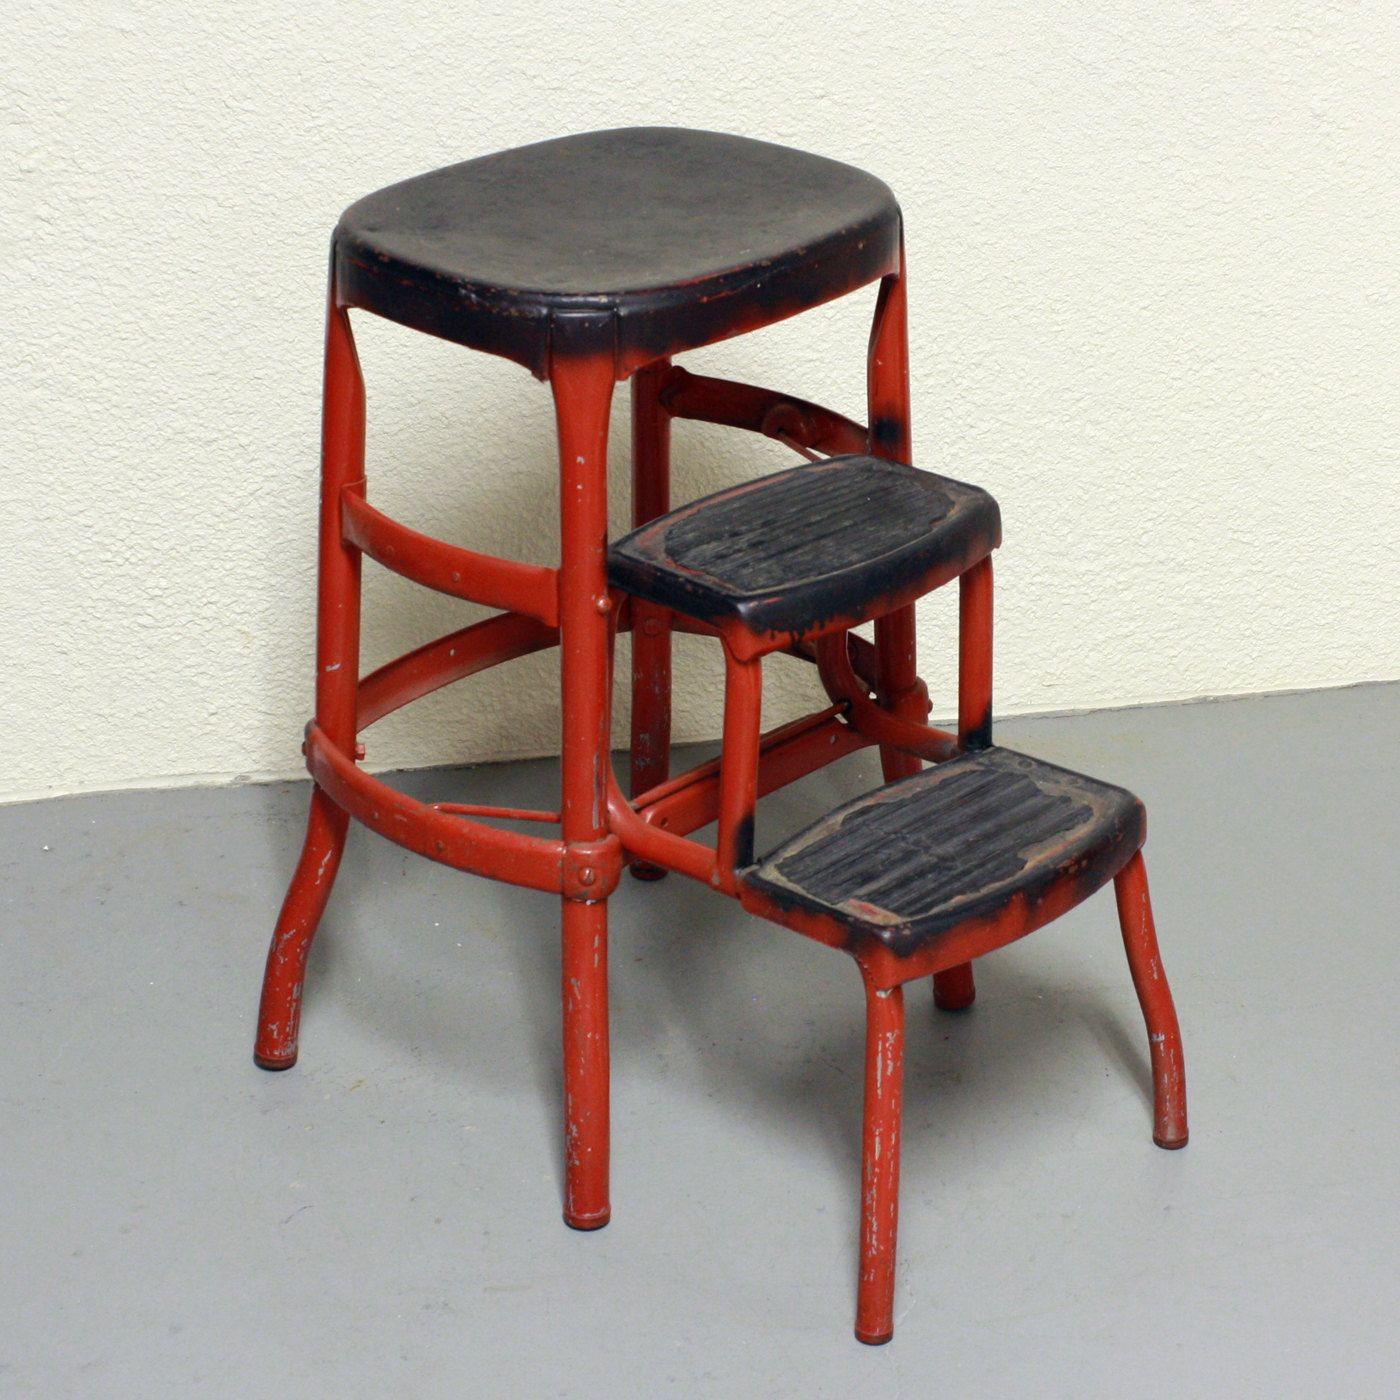 Bon 100+ Vintage Kitchen Step Stool Chair   Cabinet Ideas For Kitchens Check  More At Http